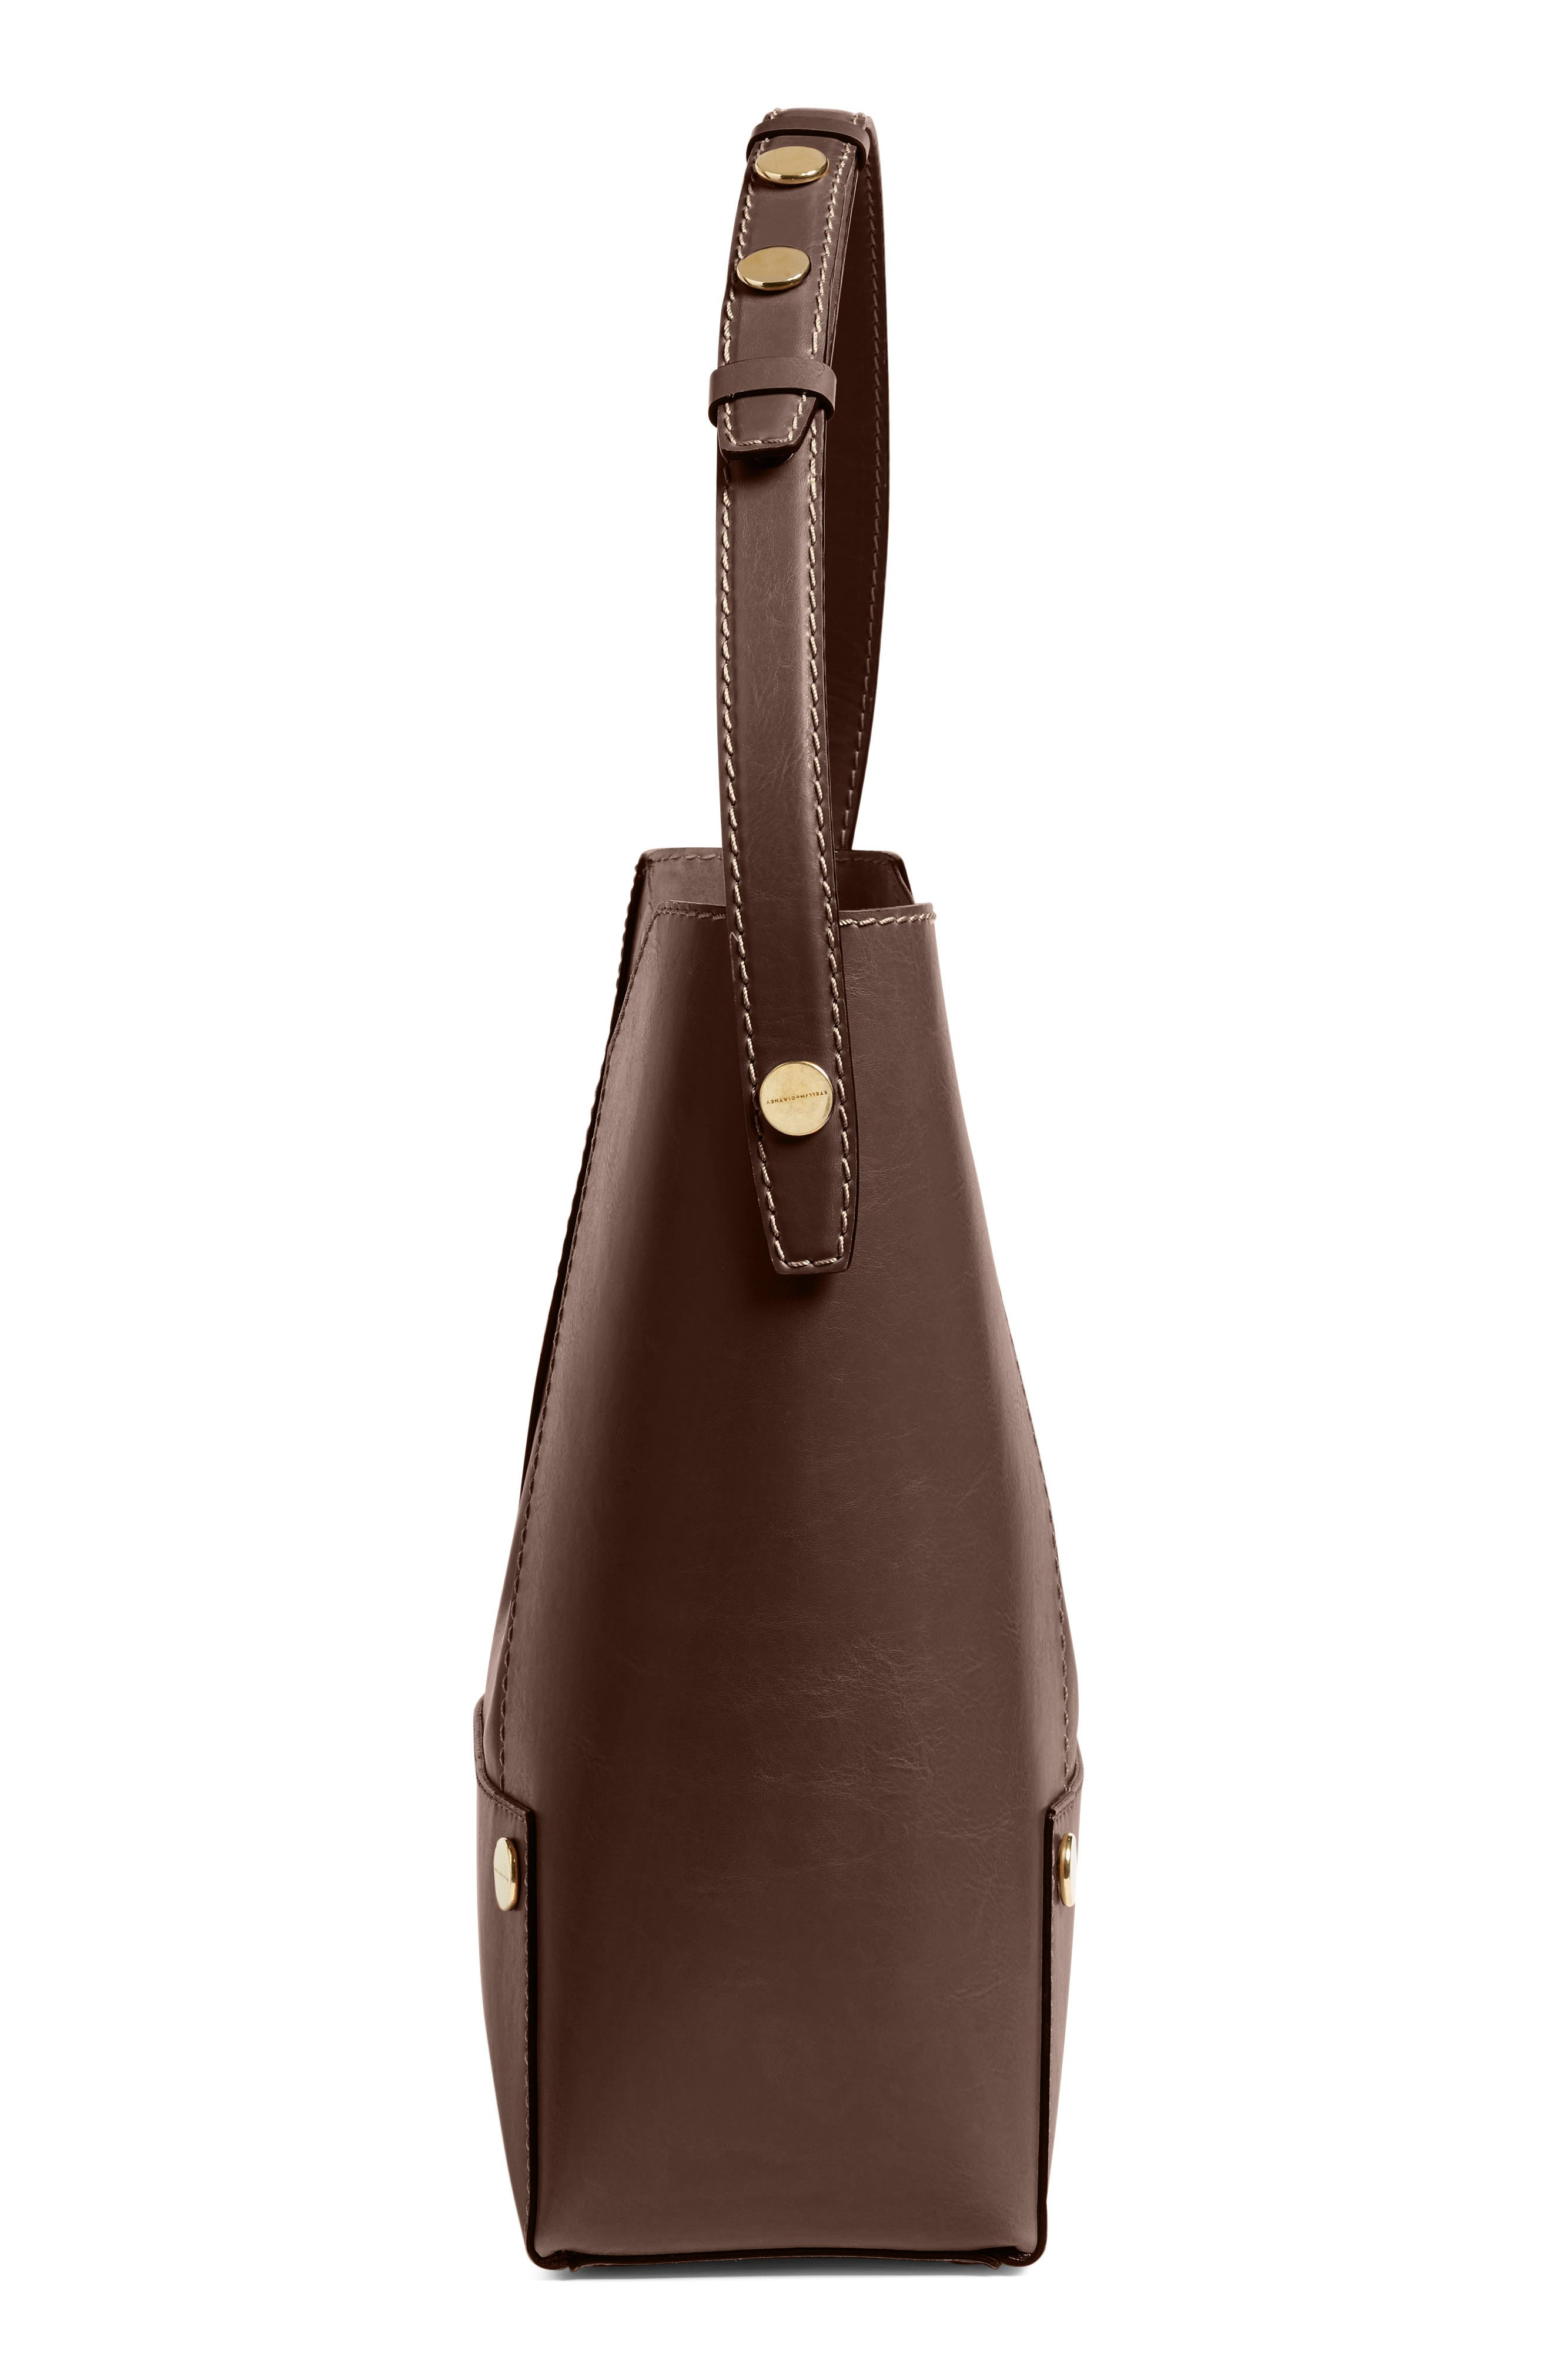 Popper Faux Leather Bucket Bag,                             Alternate thumbnail 4, color,                             217